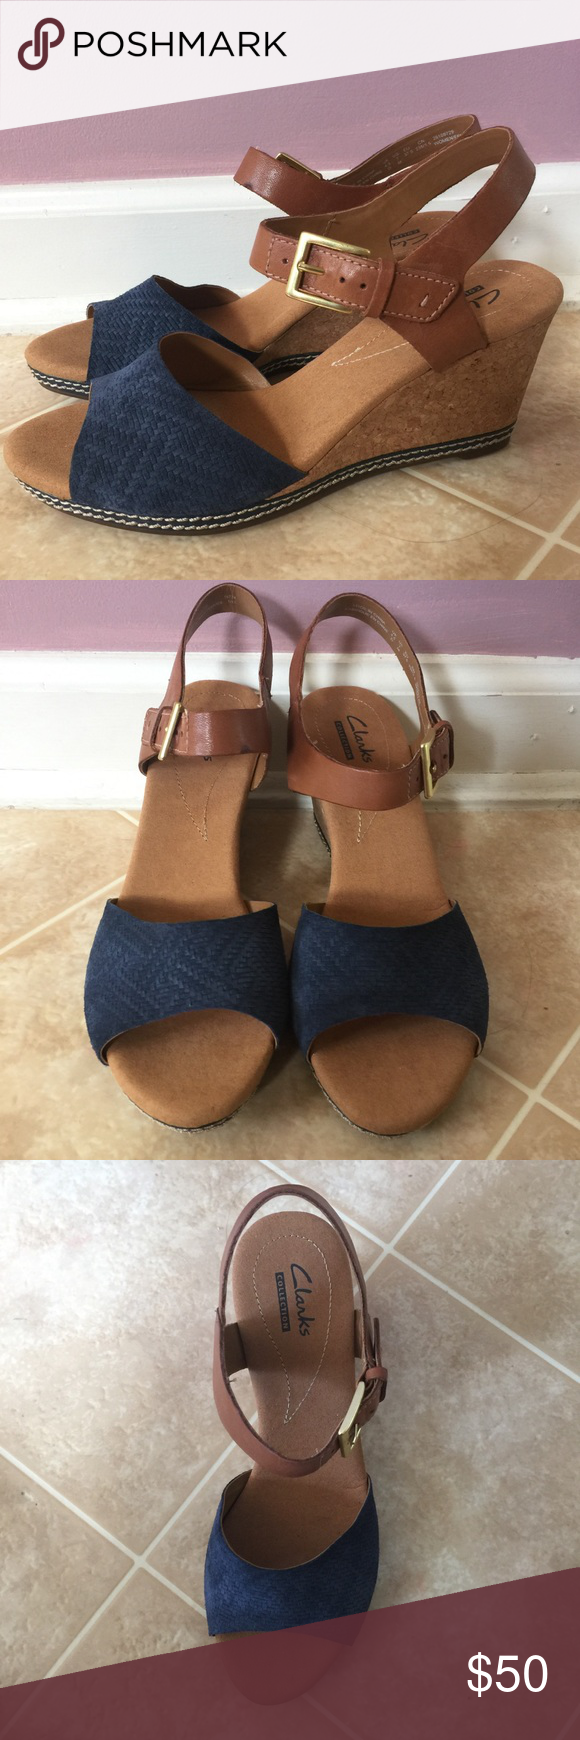 1eb6353d5ac Clarks collection Helio Jet wedge NWOT Clarks collection. Helio Jet wedge.  Brown straps w